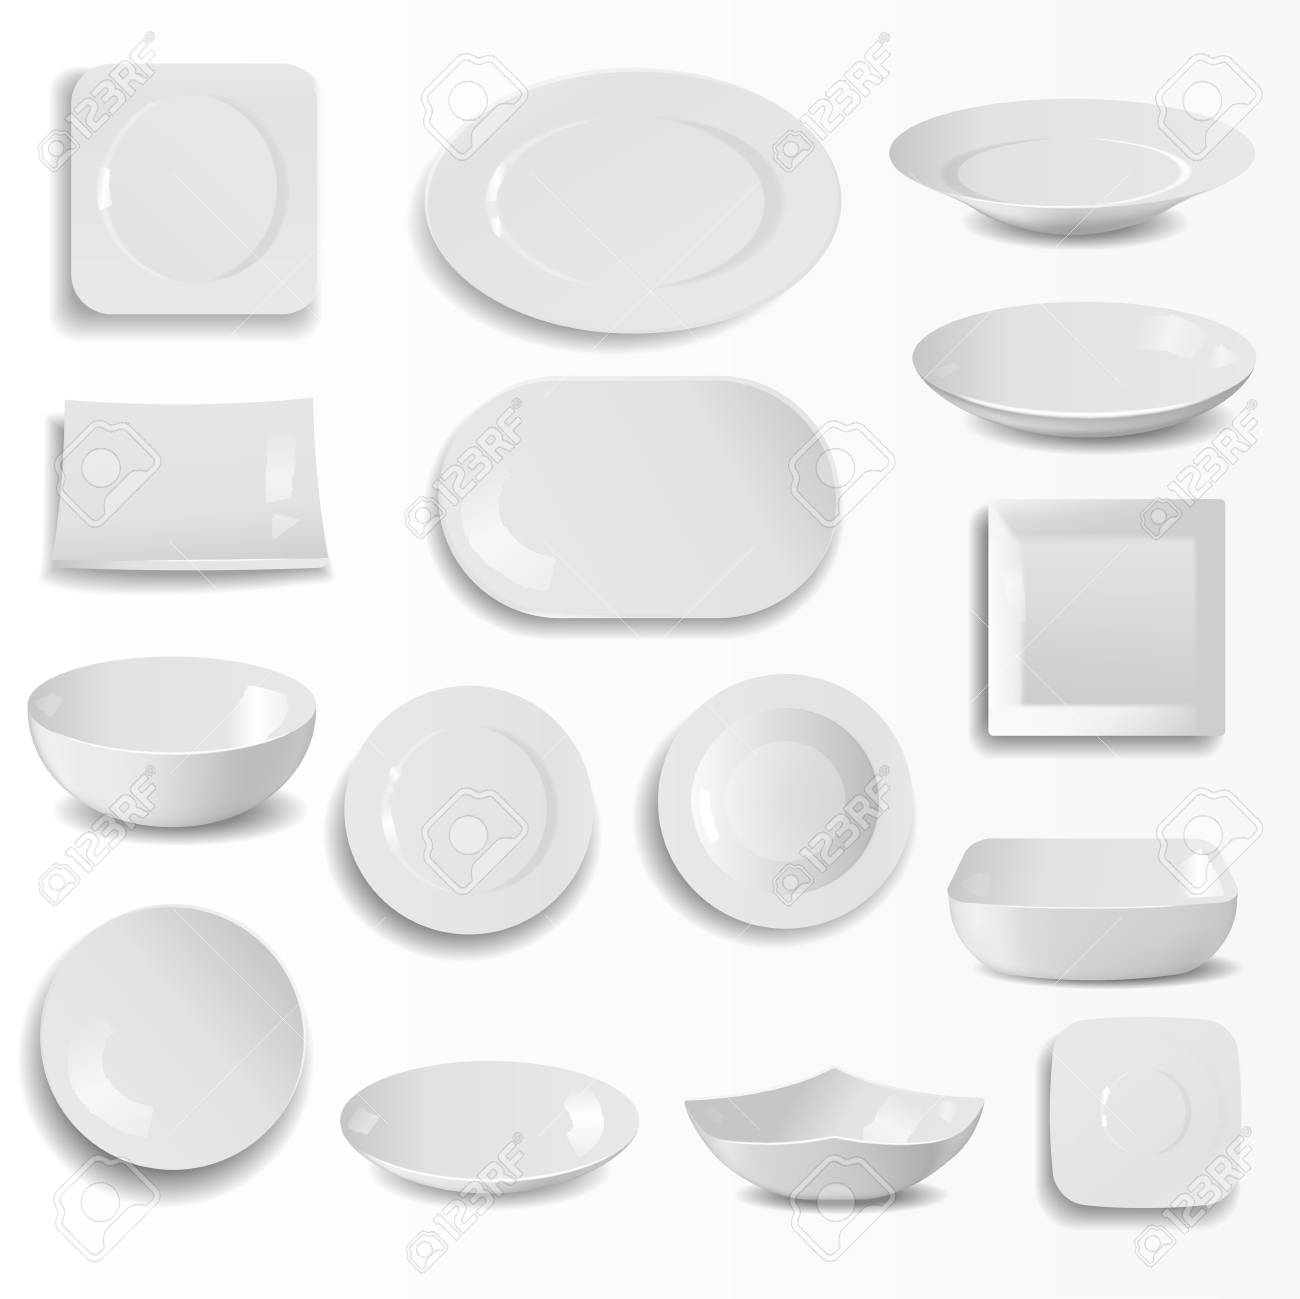 A Blank Ceramic Plates Set Realistic Kitchen Dishes Template ...